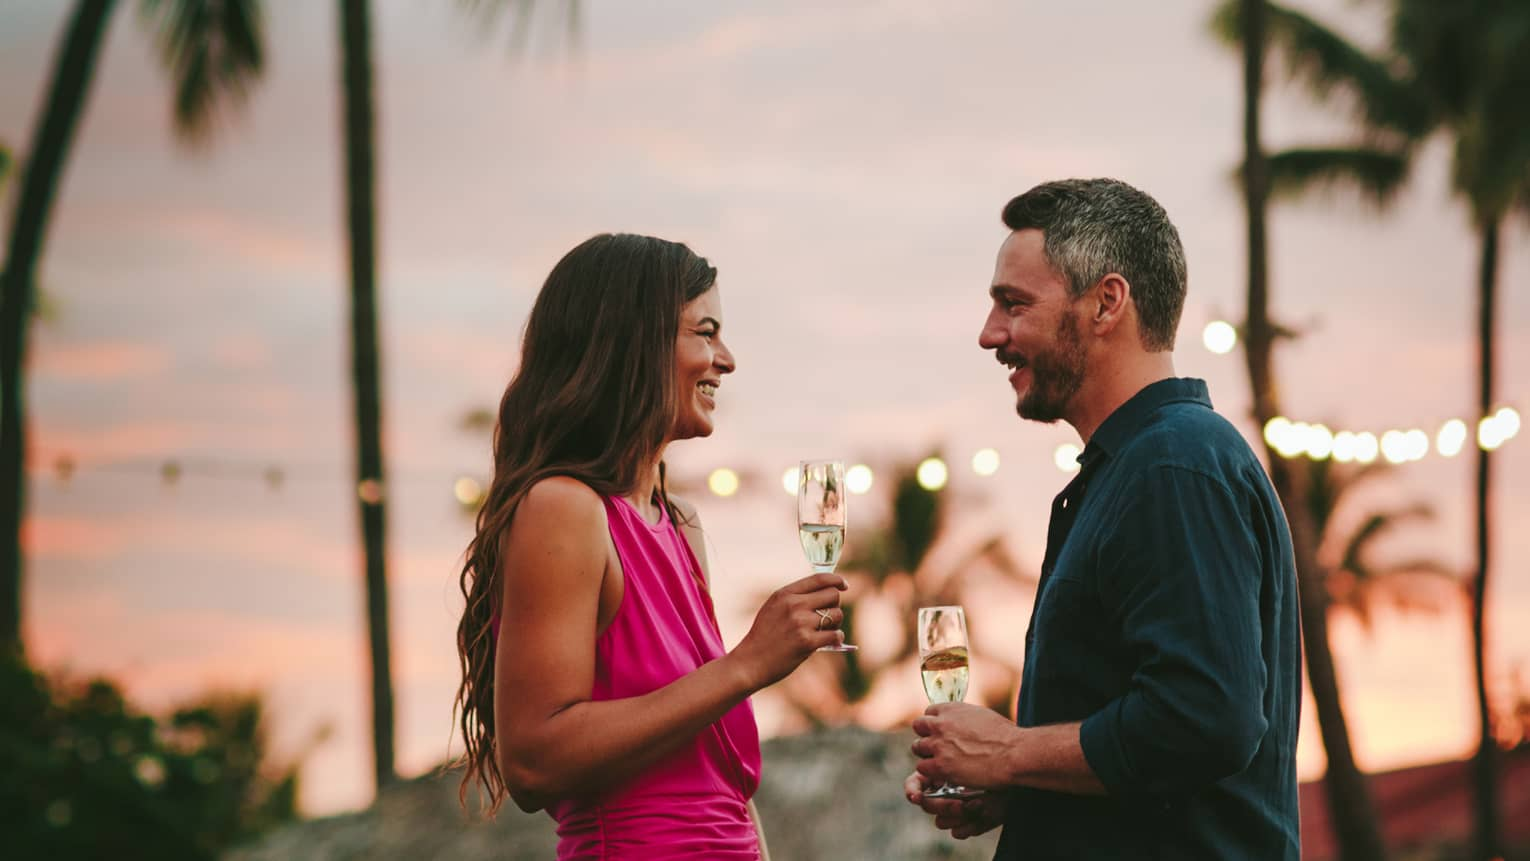 A couple enjoys some glasses of wine on the beach under the palm trees